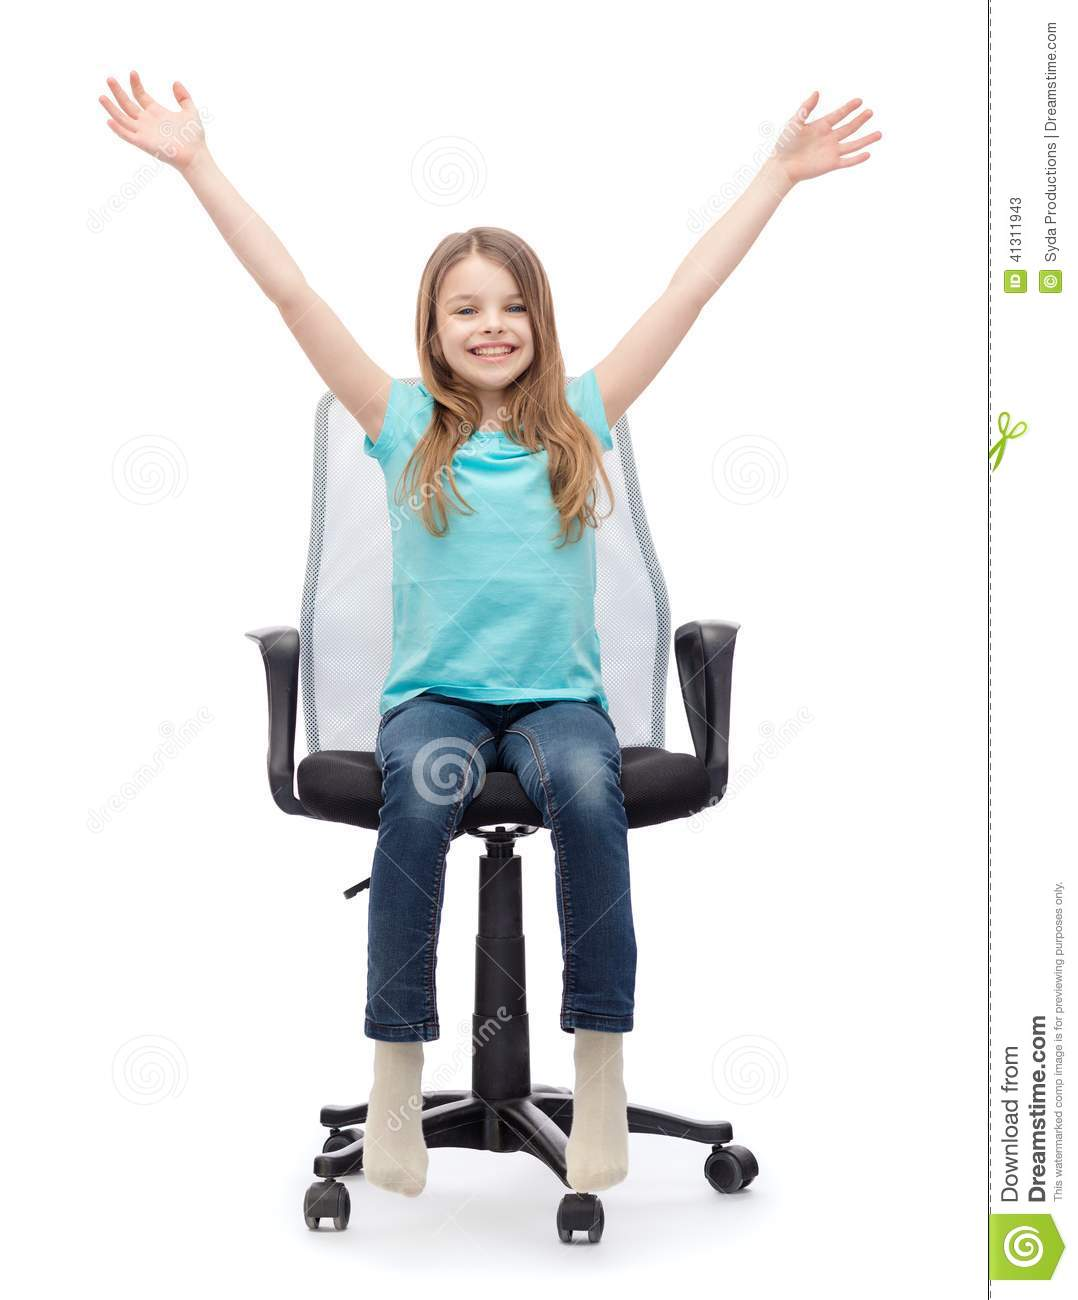 Girls Office Chair Smiling Little Girl Sitting In Big Office Chair Stock